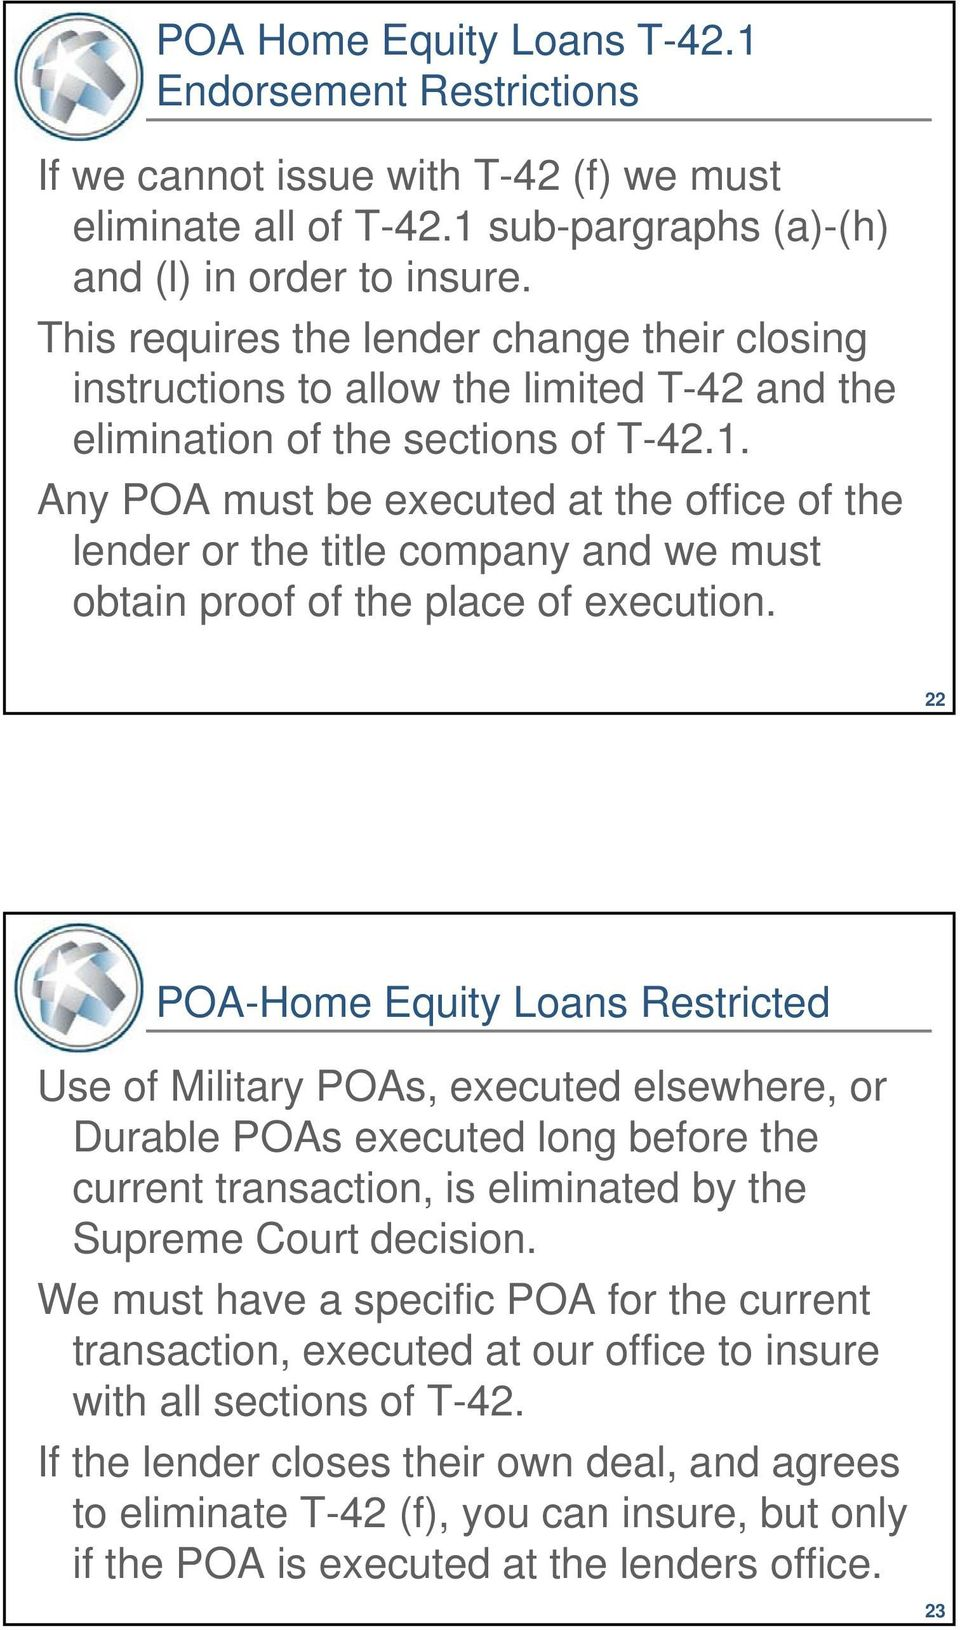 Any POA must be executed at the office of the lender or the title company and we must obtain proof of the place of execution.